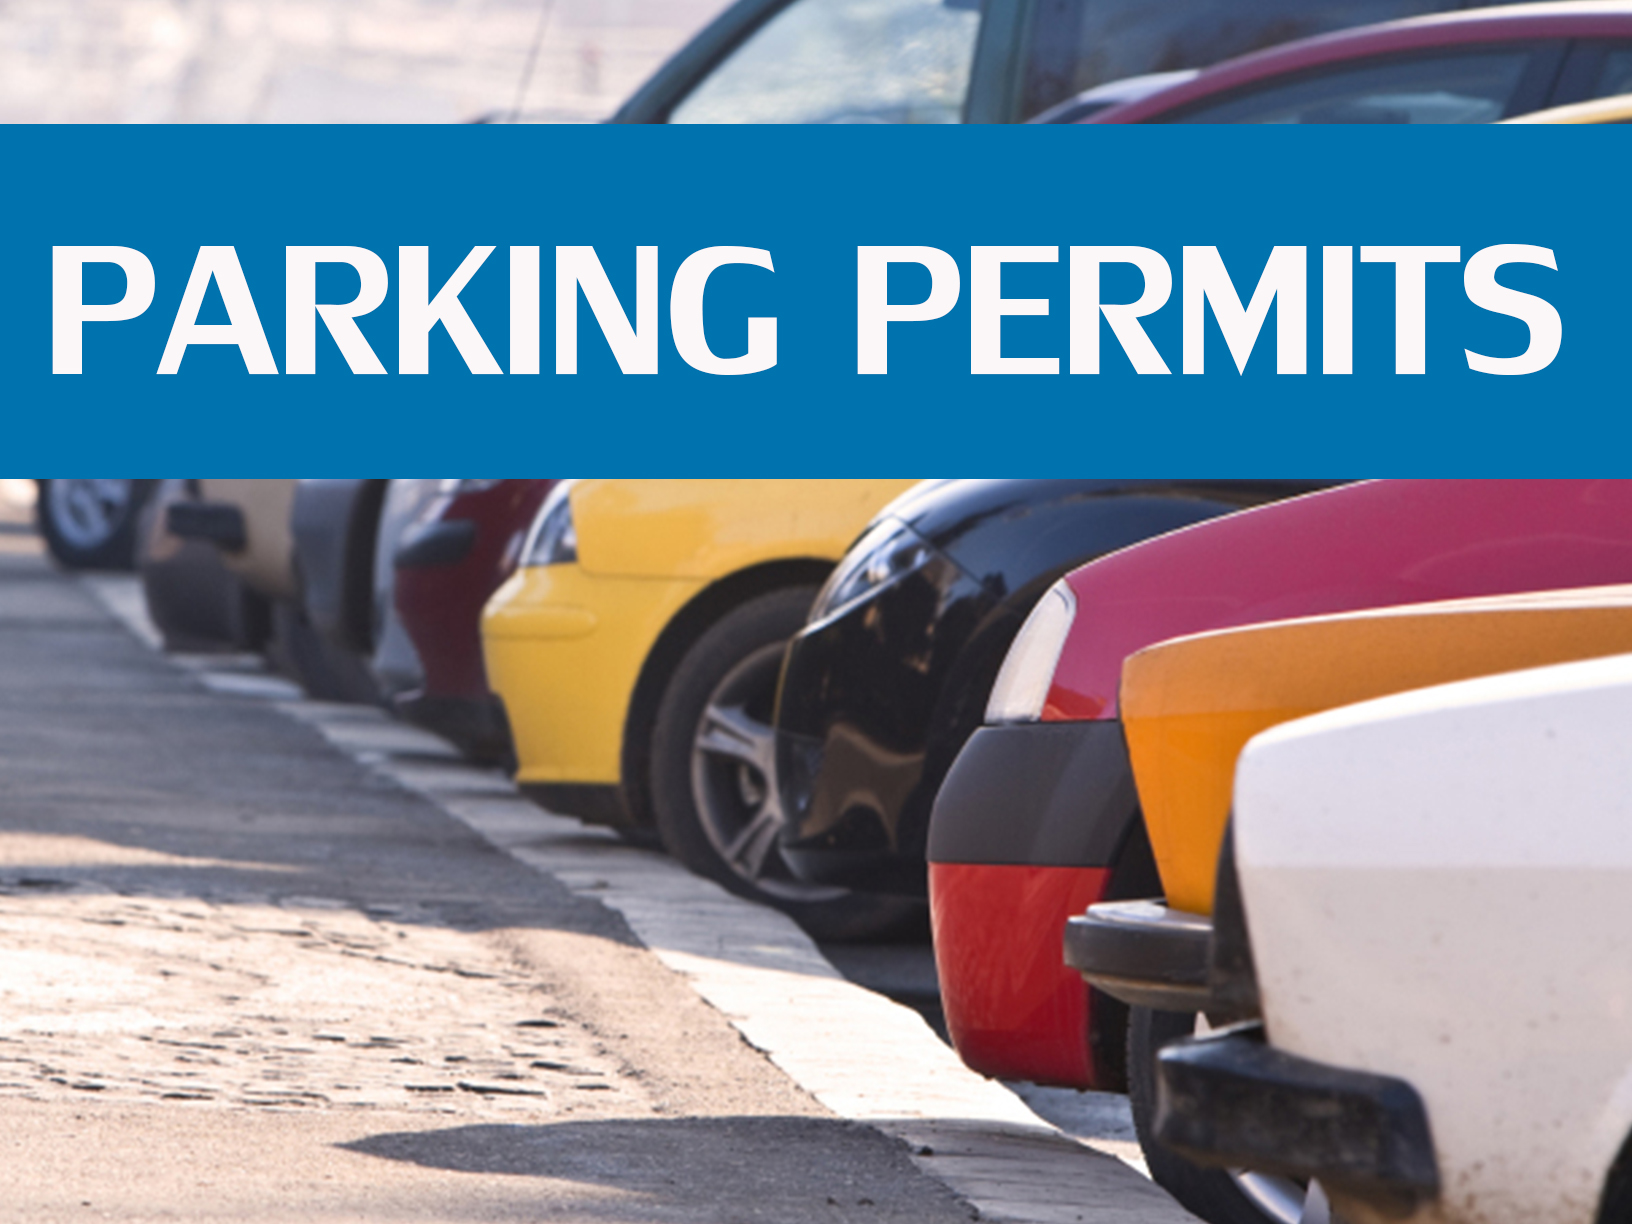 Pay for Parking, Parking Permits, Parkmobile, Clearwater Parking Payments